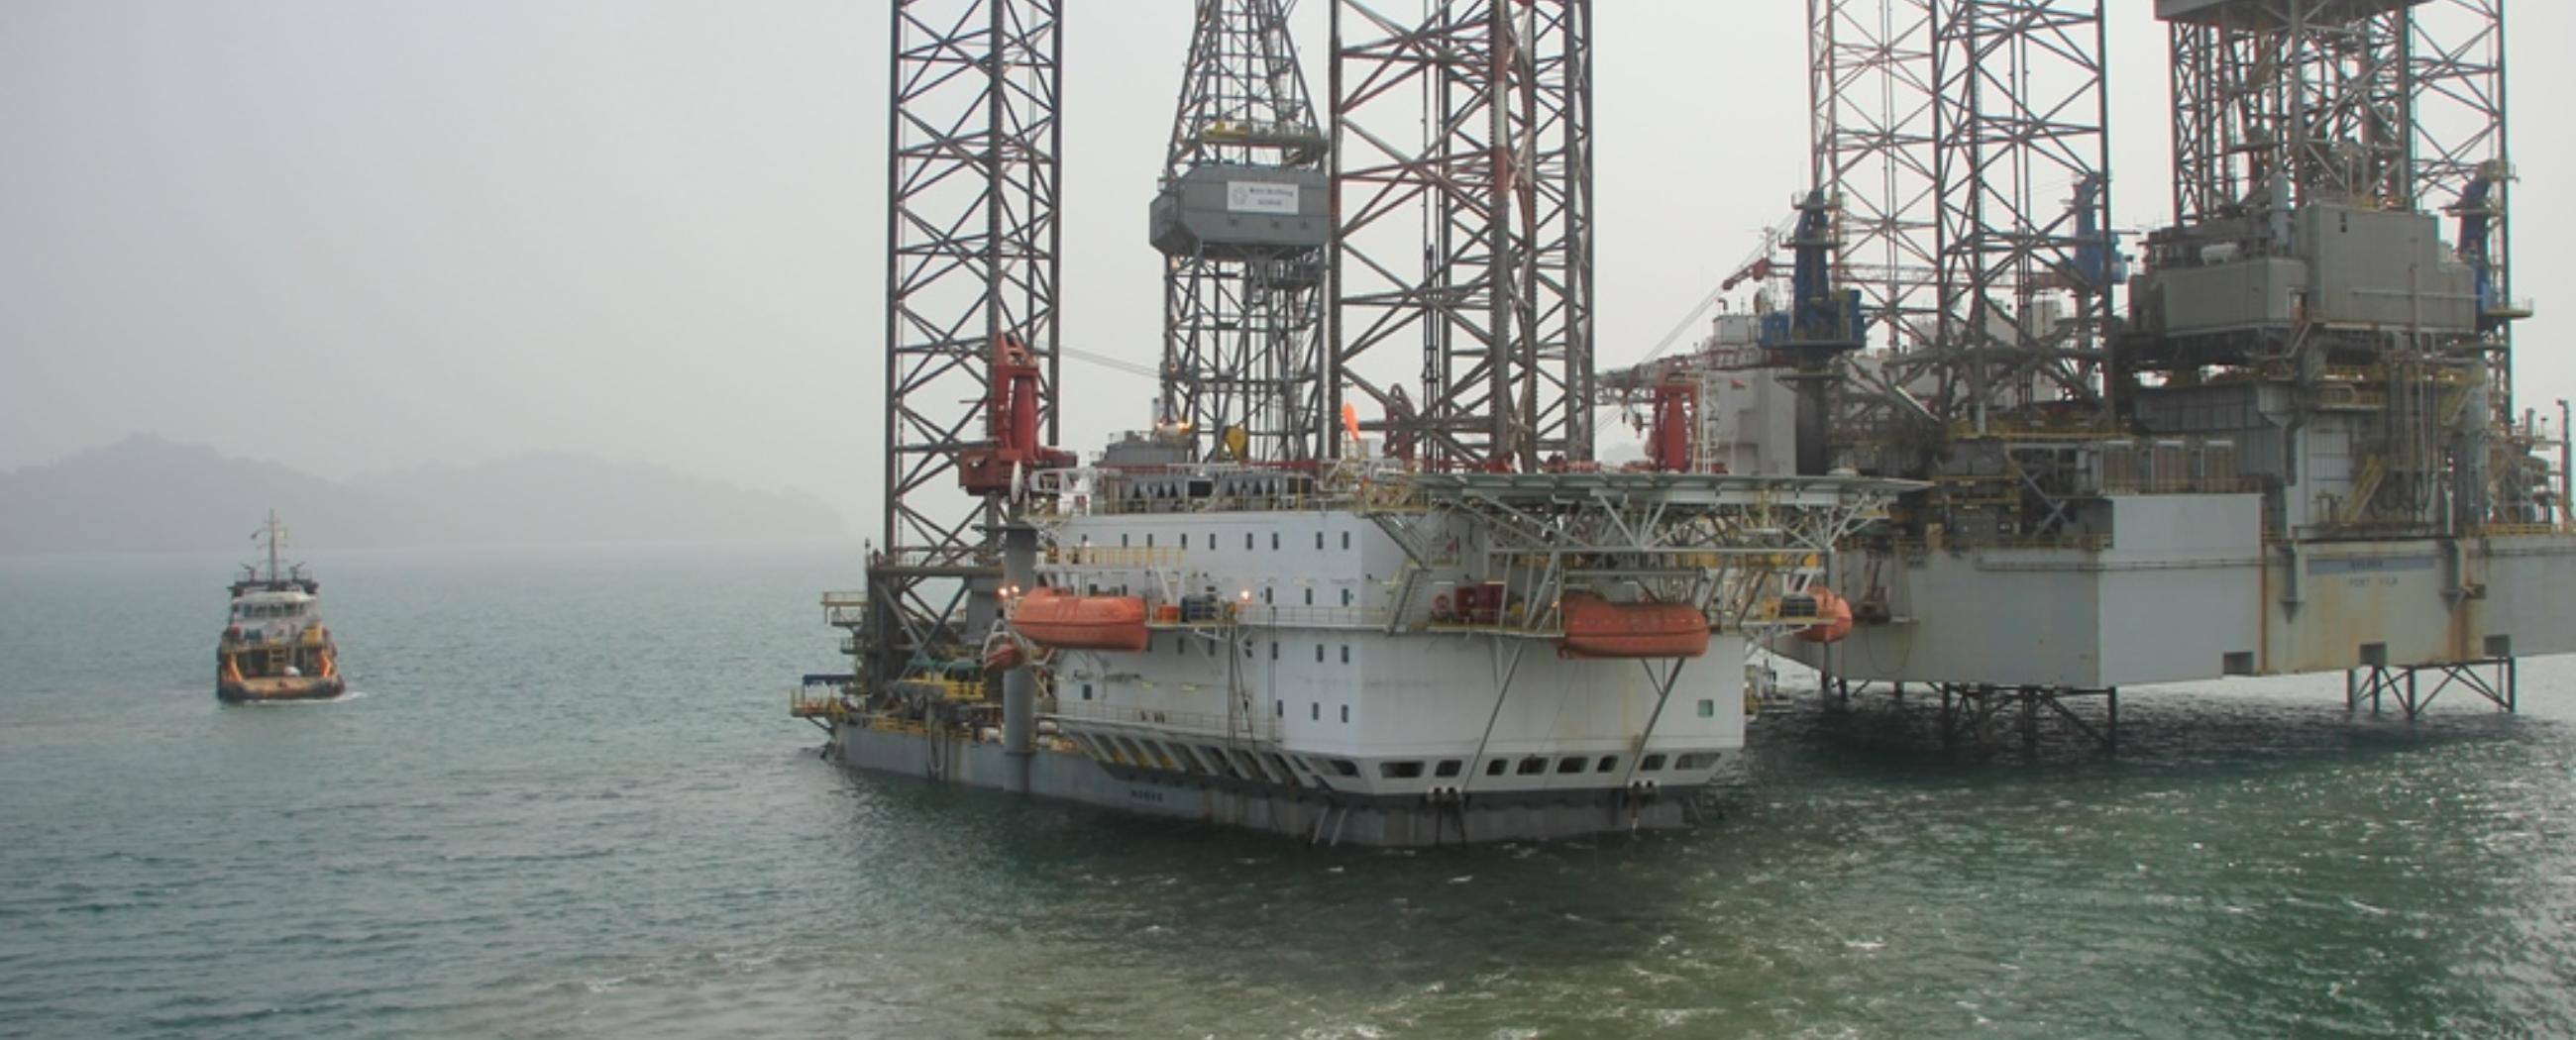 ALP Striker_BW-Offshore Norve JU-rig move (2).jpeg